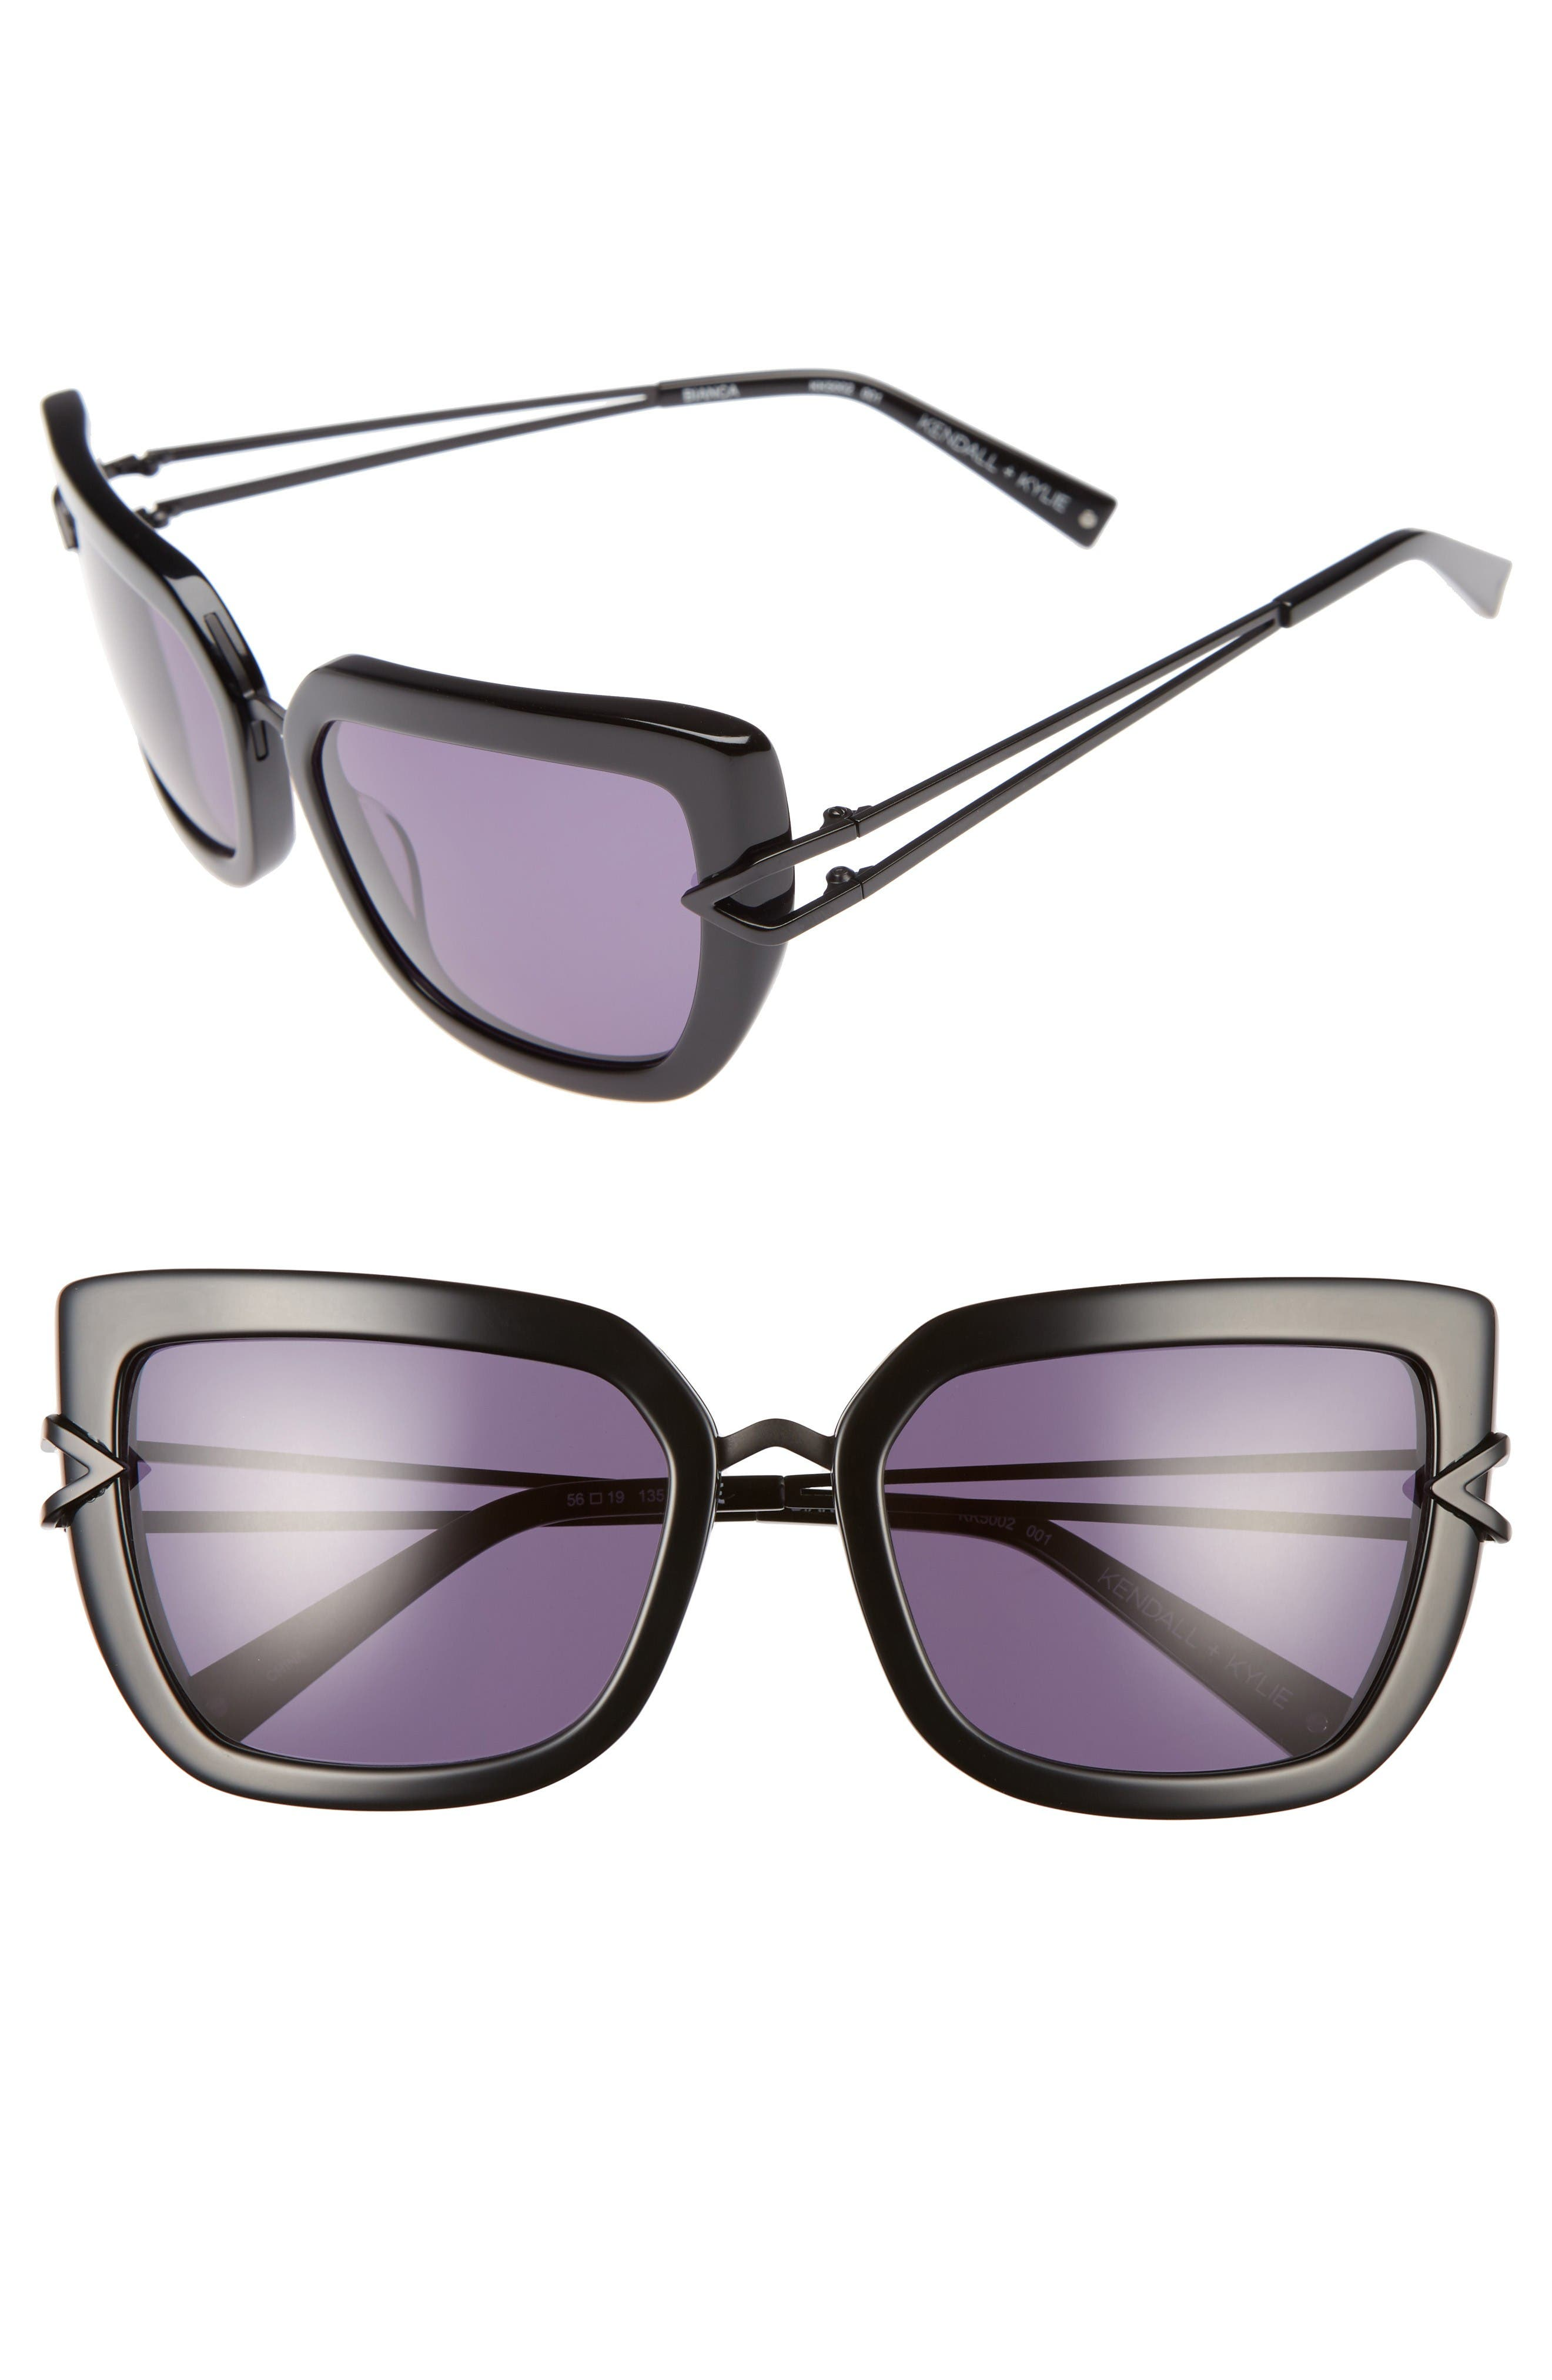 Main Image - KENDALL + KYLIE Bianca 56mm Cat Eye Sunglasses